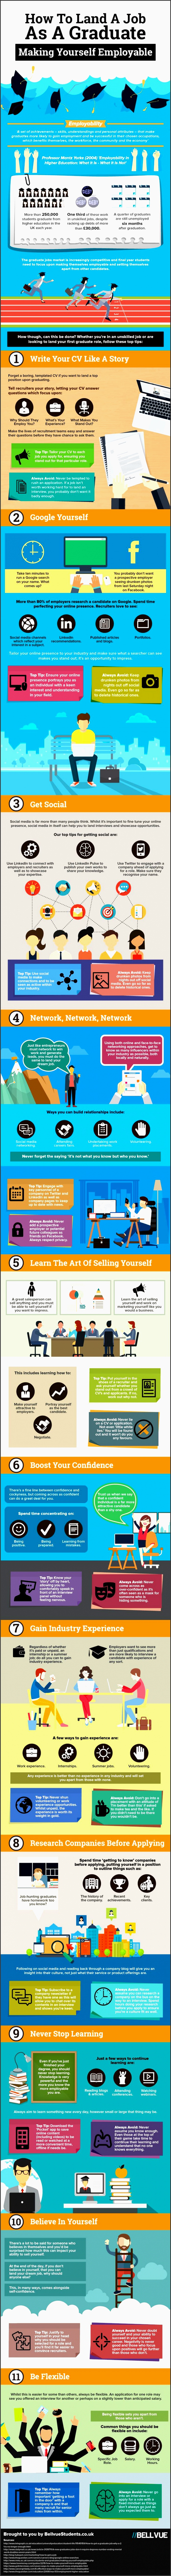 making yourself employable how to land a job as a graduate infographic career planningcareer